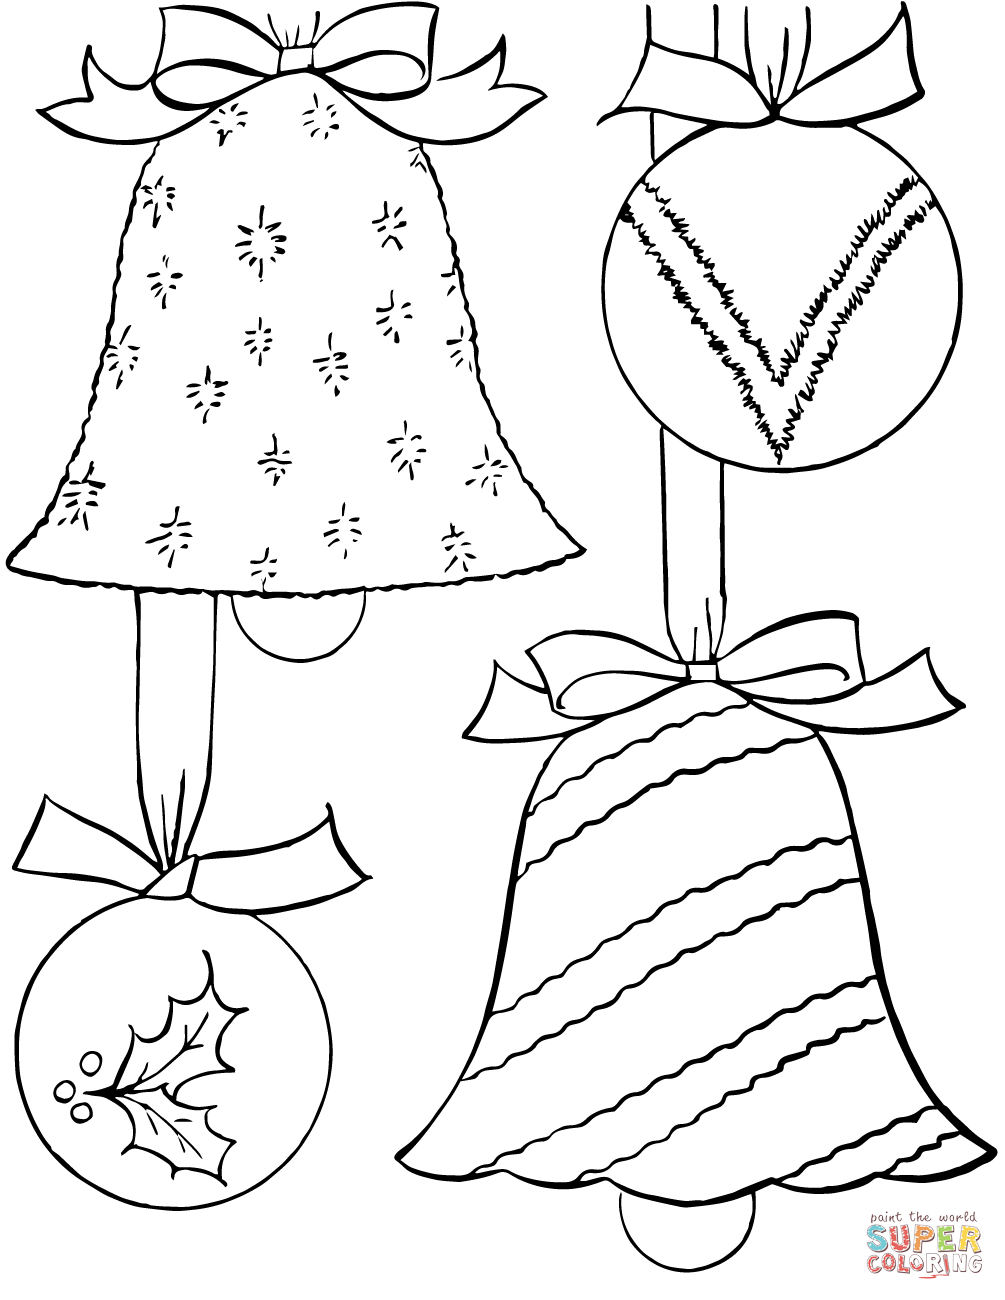 Christmas Ornaments Coloring Page | Free Printable Coloring Pages - Free Printable Christmas Ornament Coloring Pages